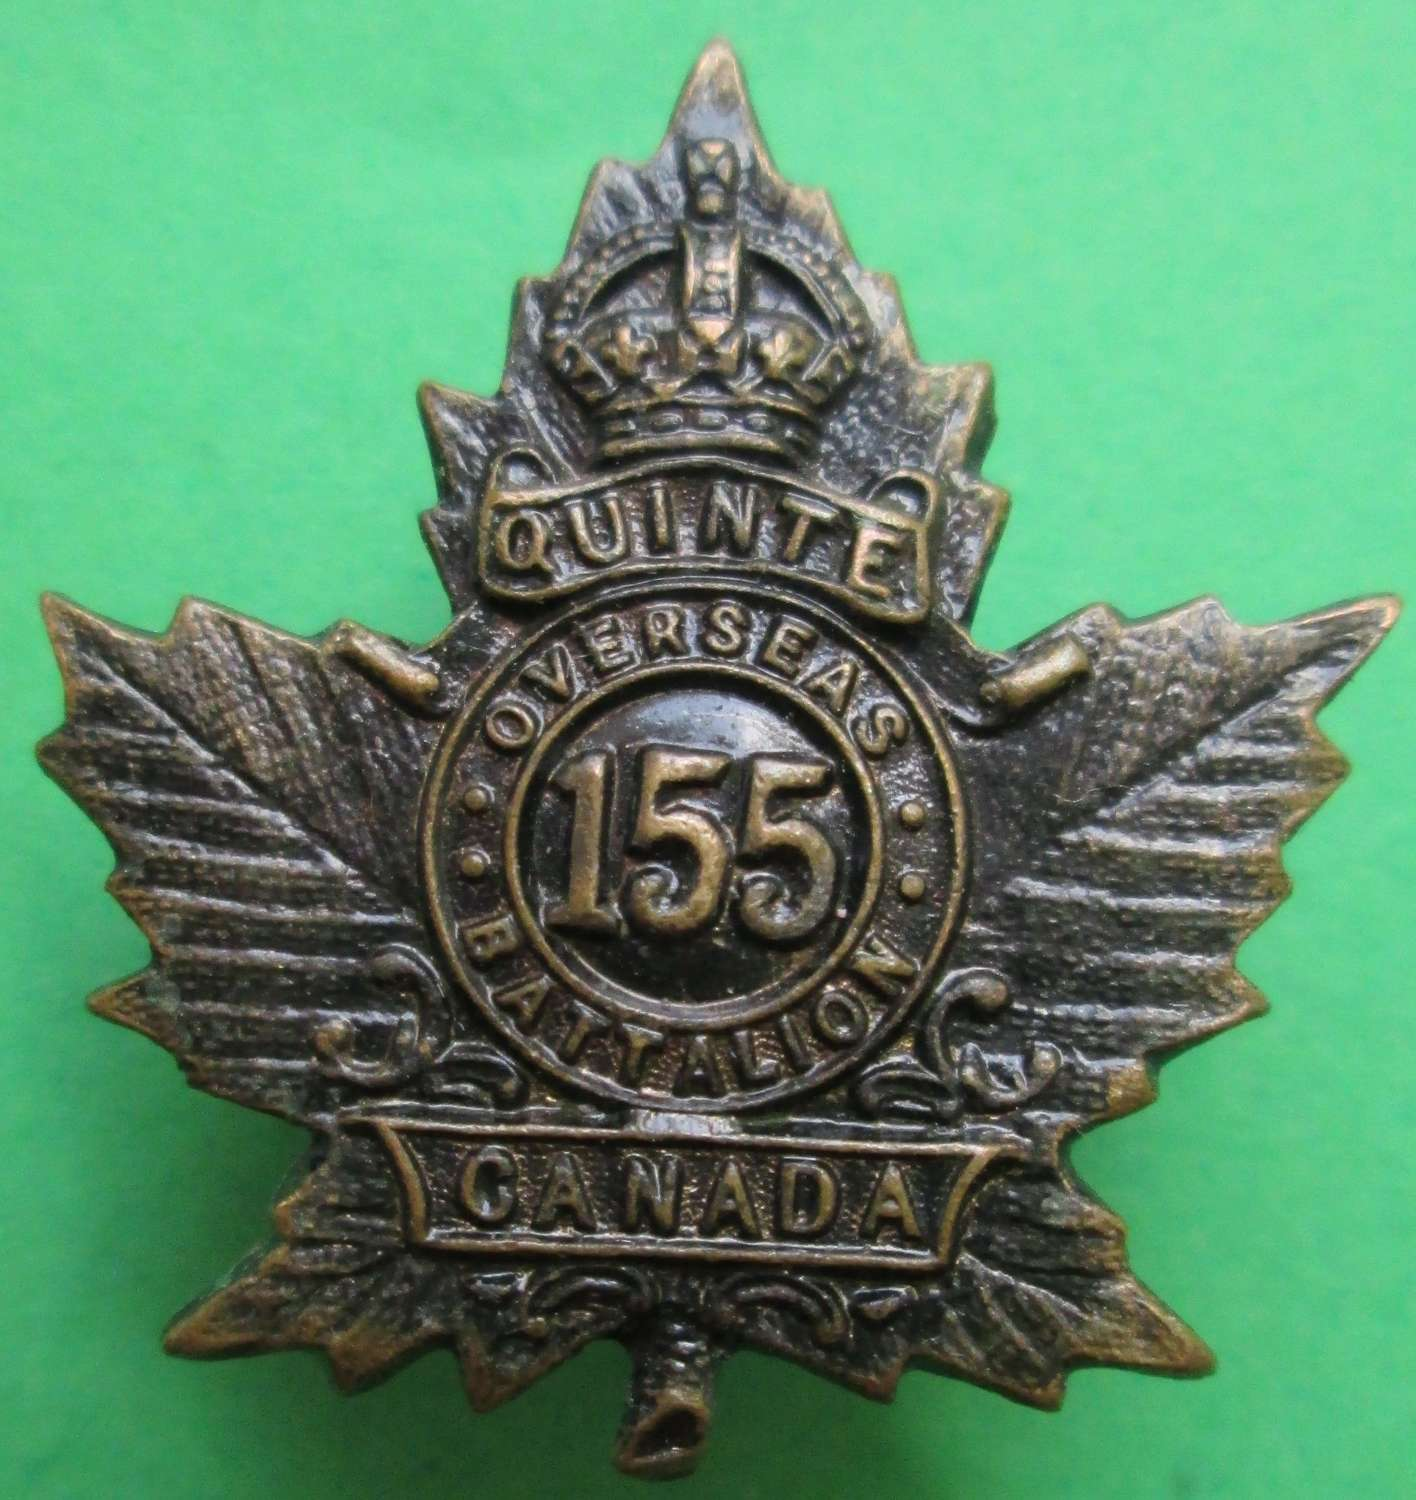 A CANADIAN 155TH INFANTRY BATTALION BADGE